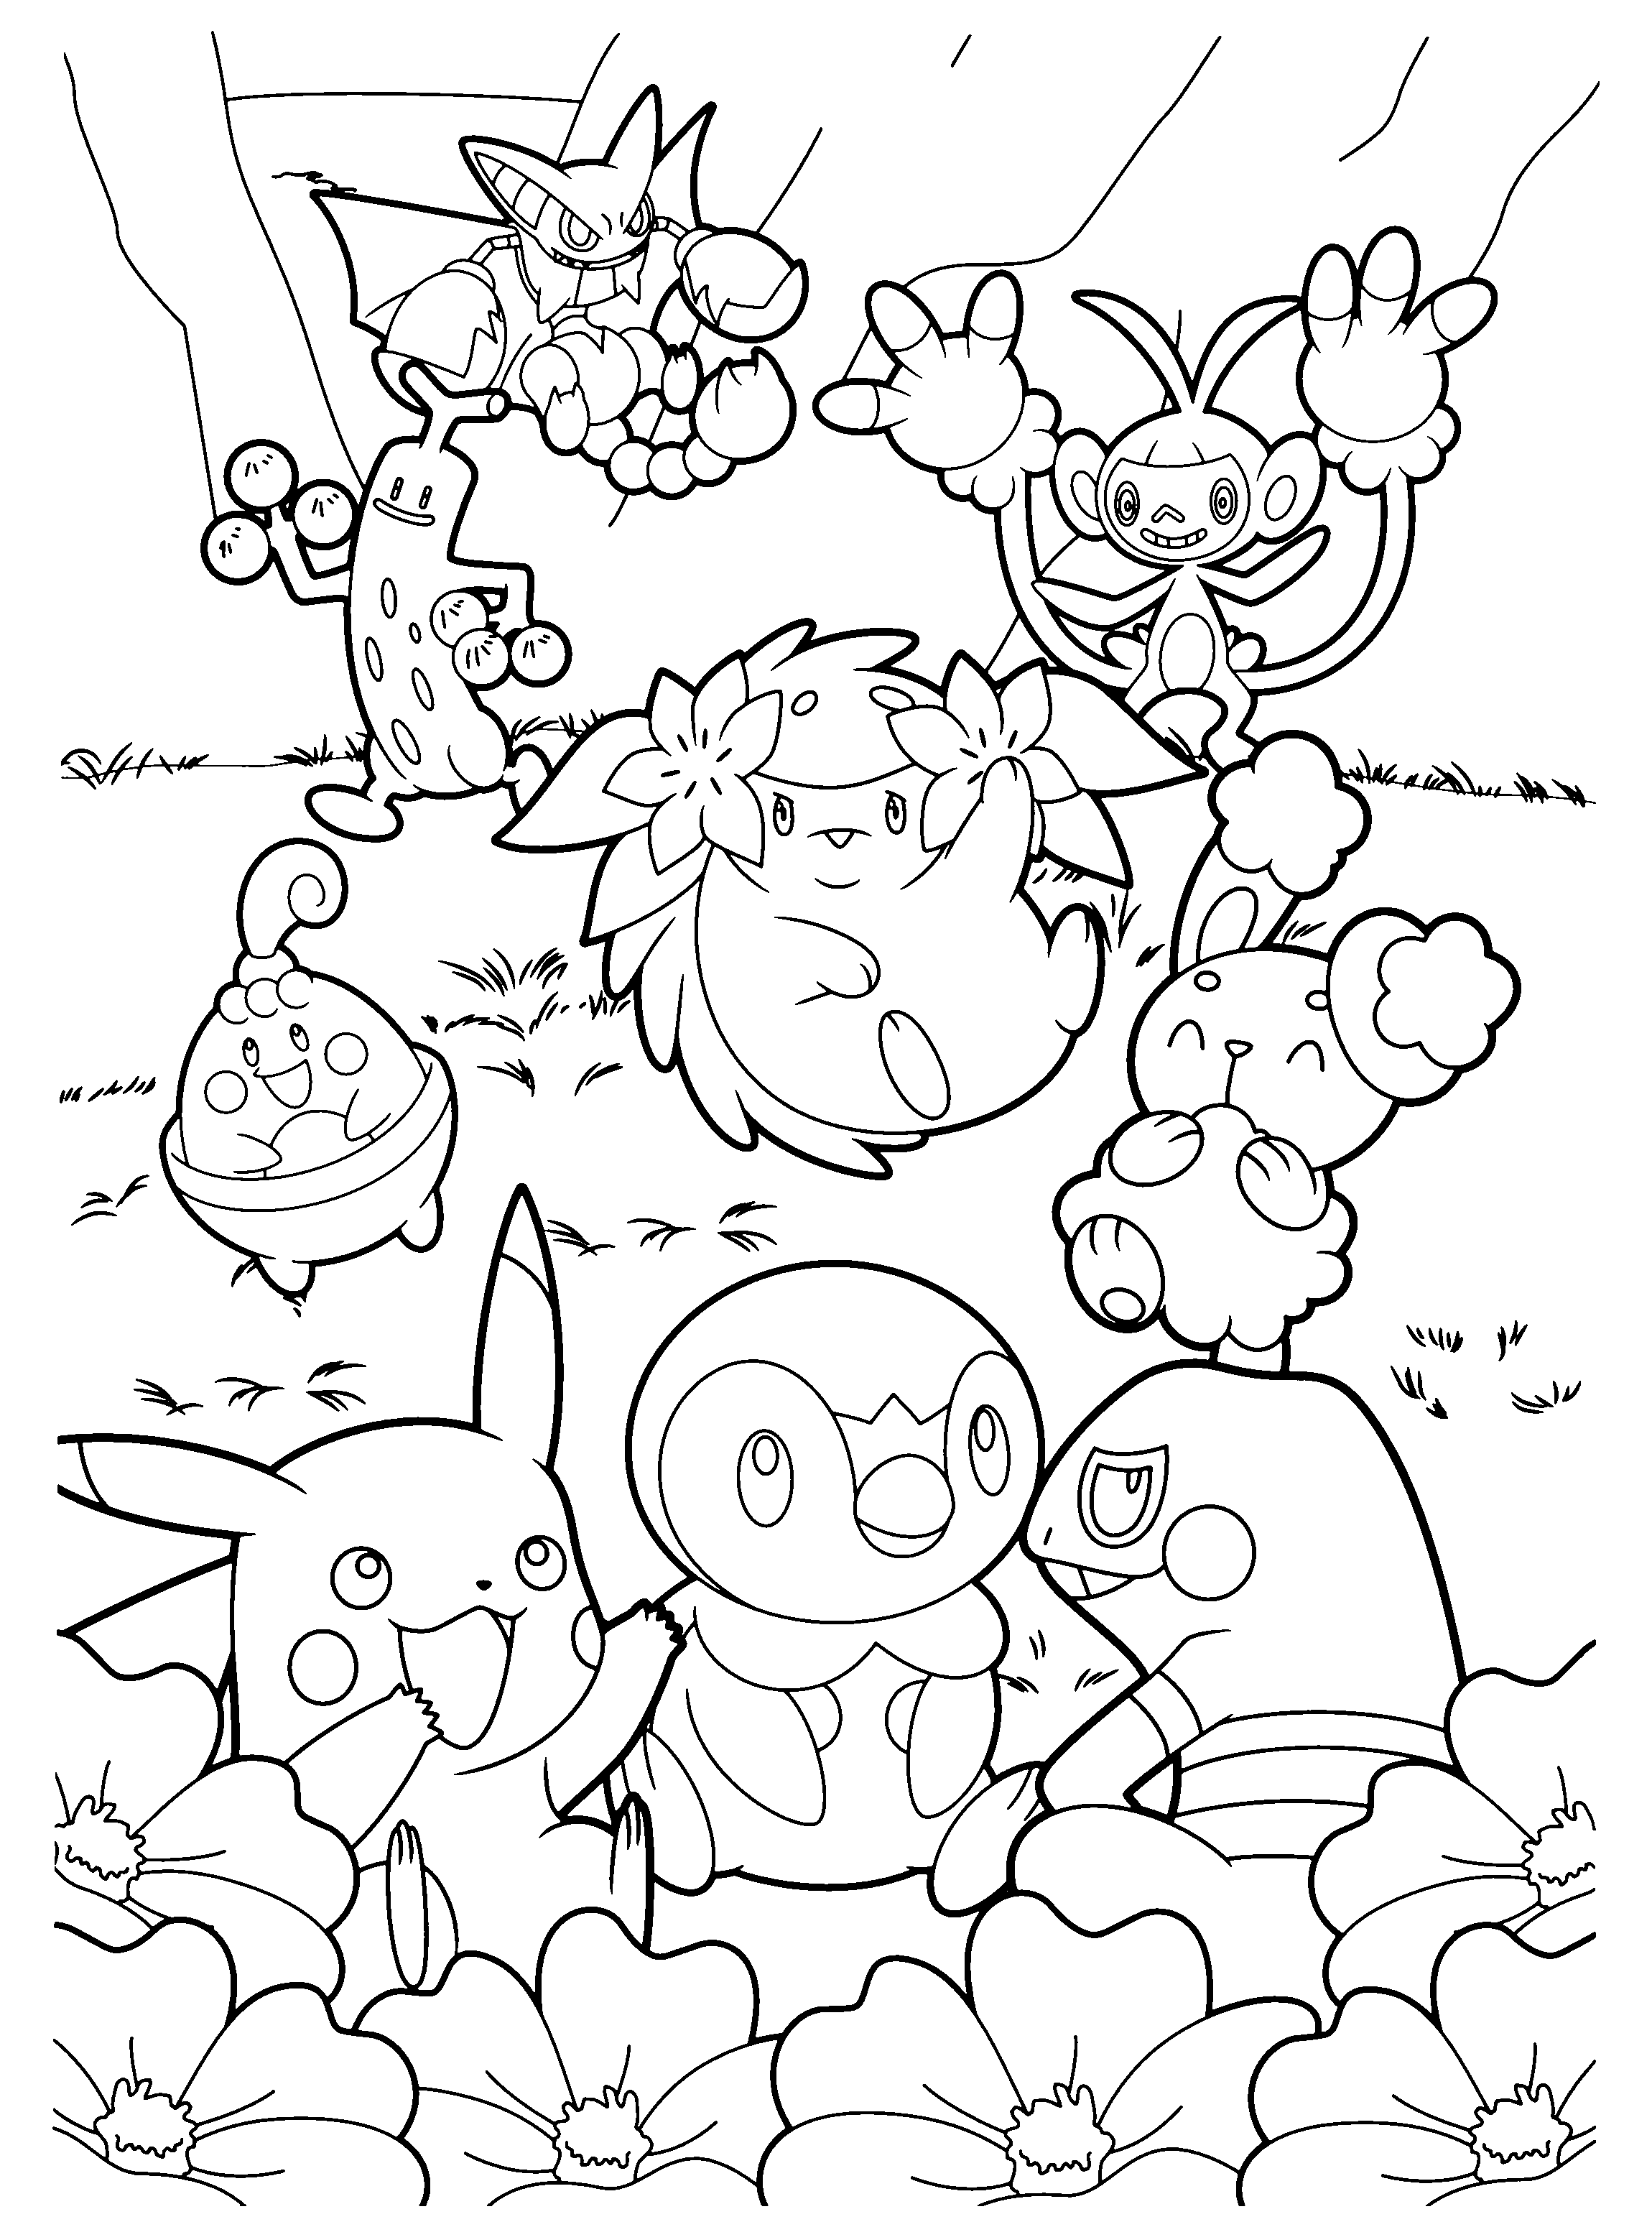 pakemon diamond pearl coloring pages - photo#30